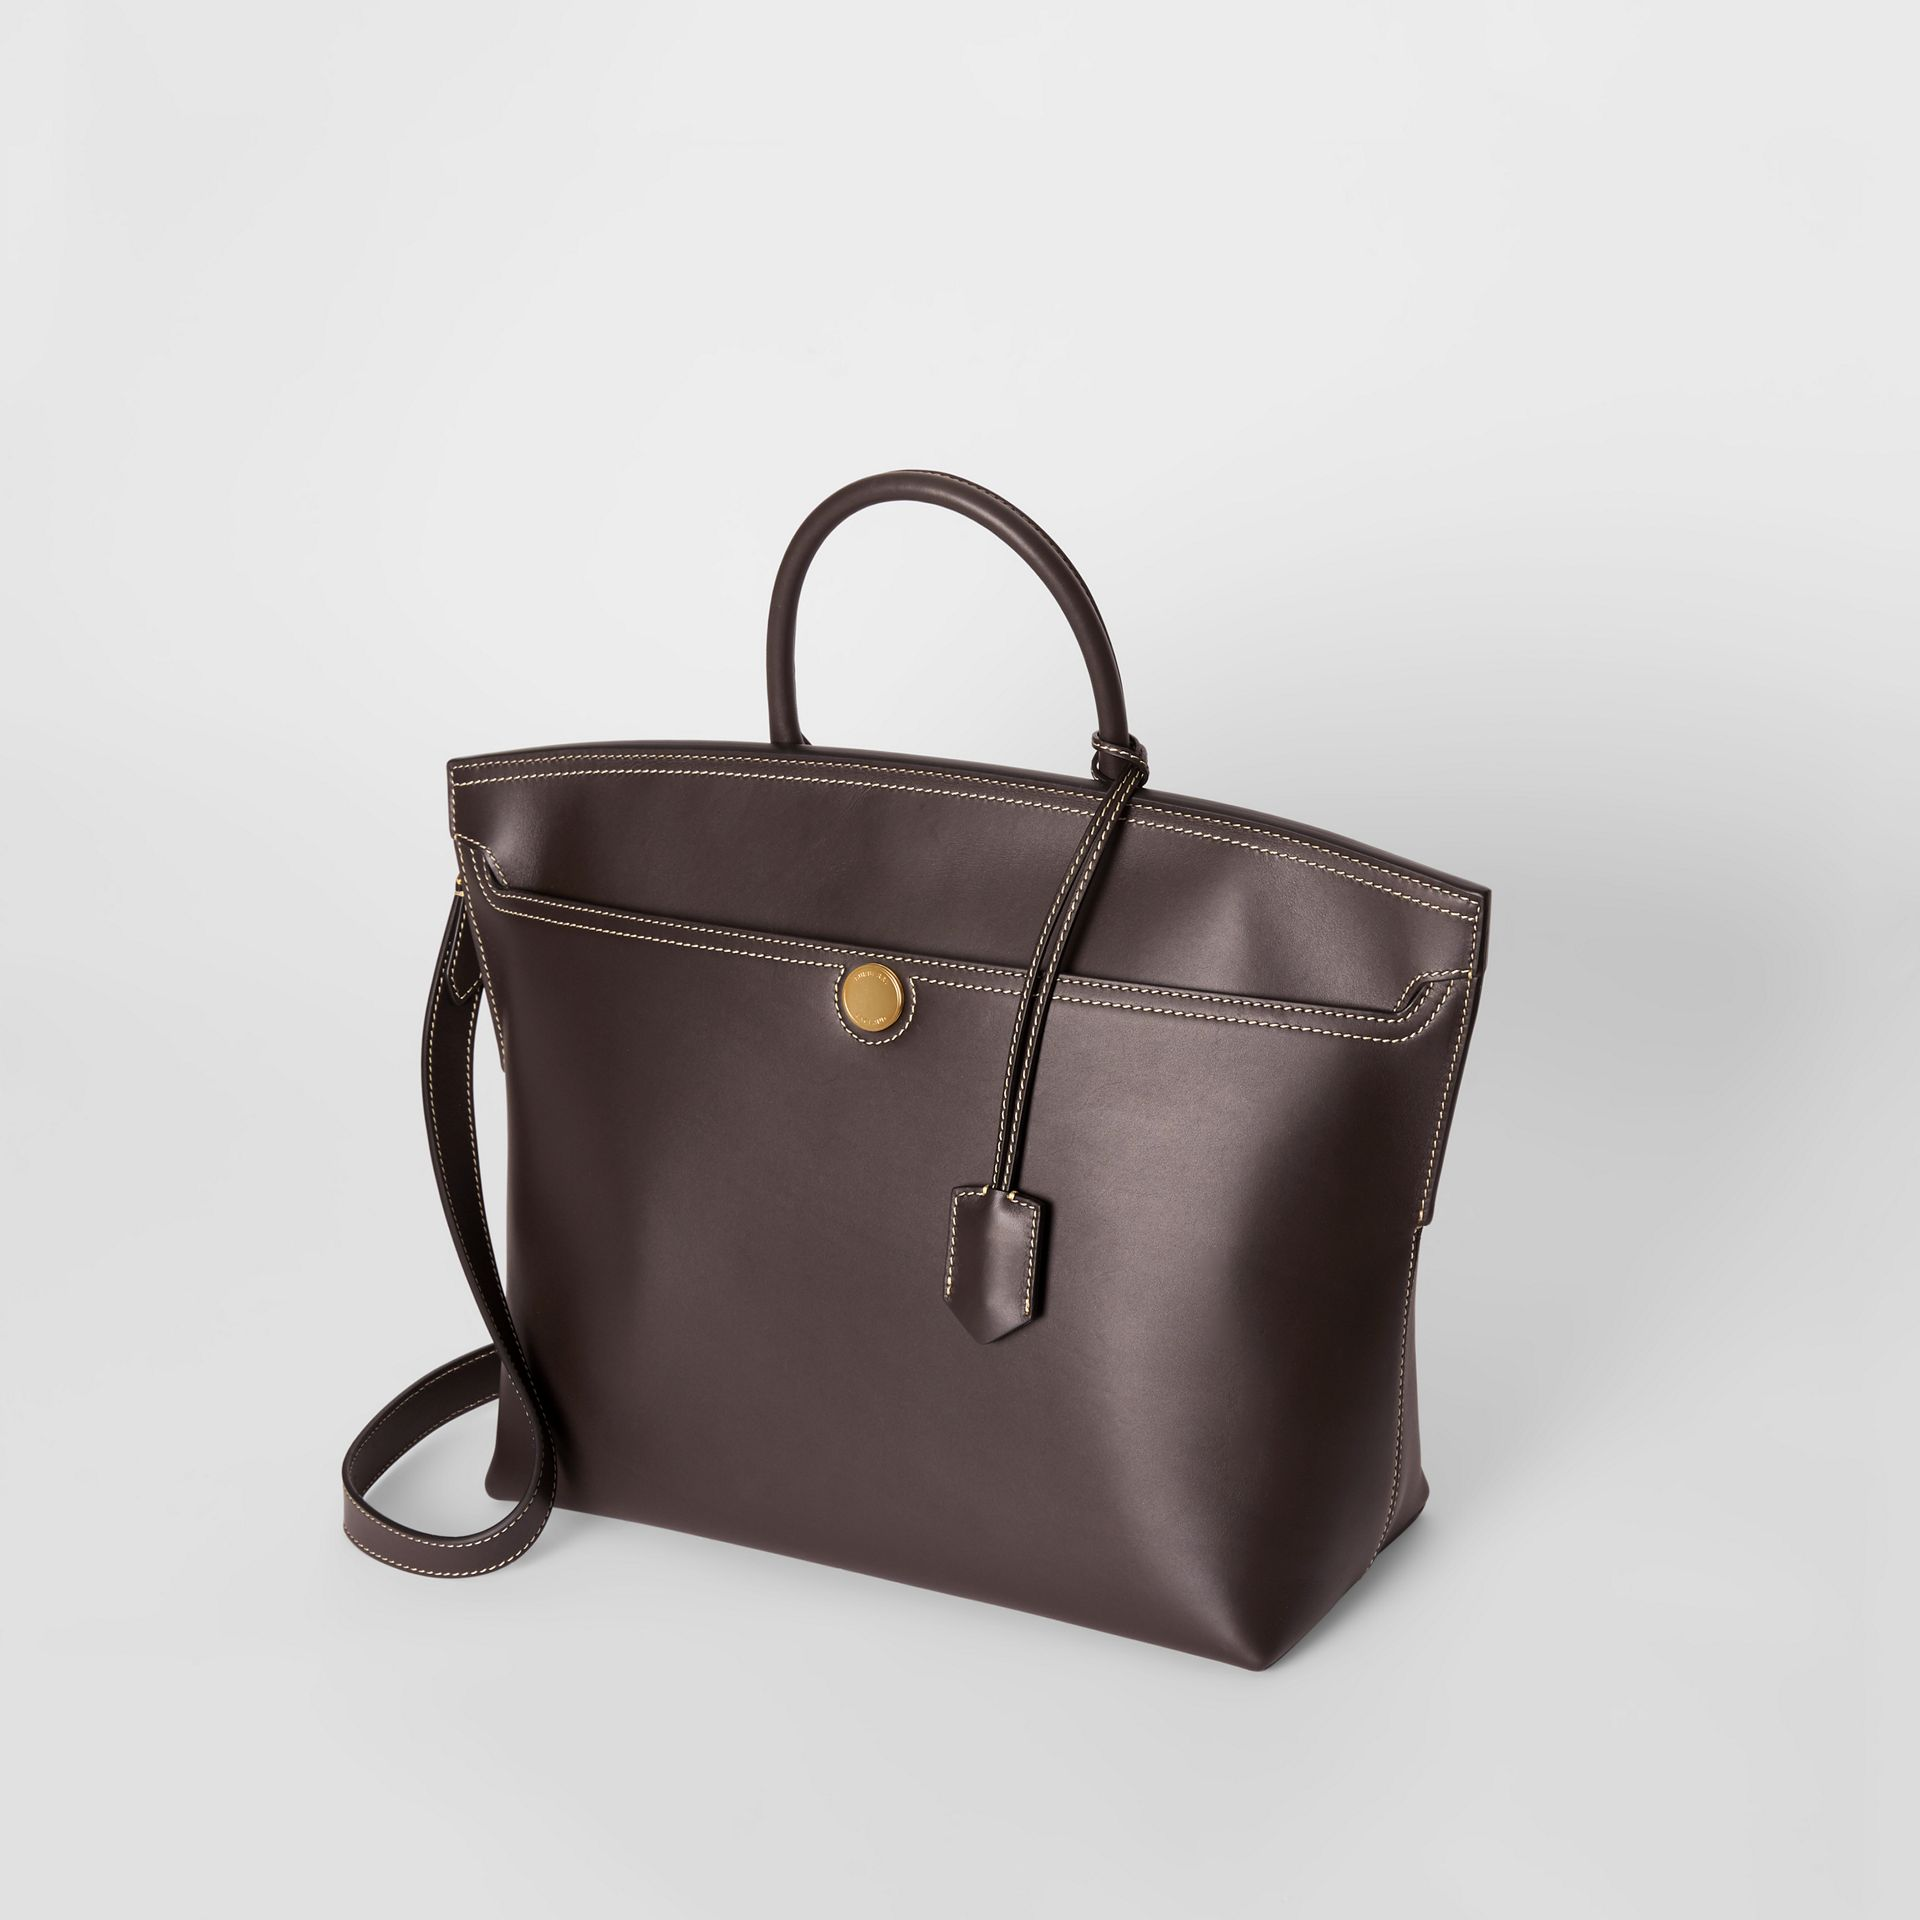 Leather Society Top Handle Bag in Coffee - Women | Burberry United Kingdom - gallery image 3